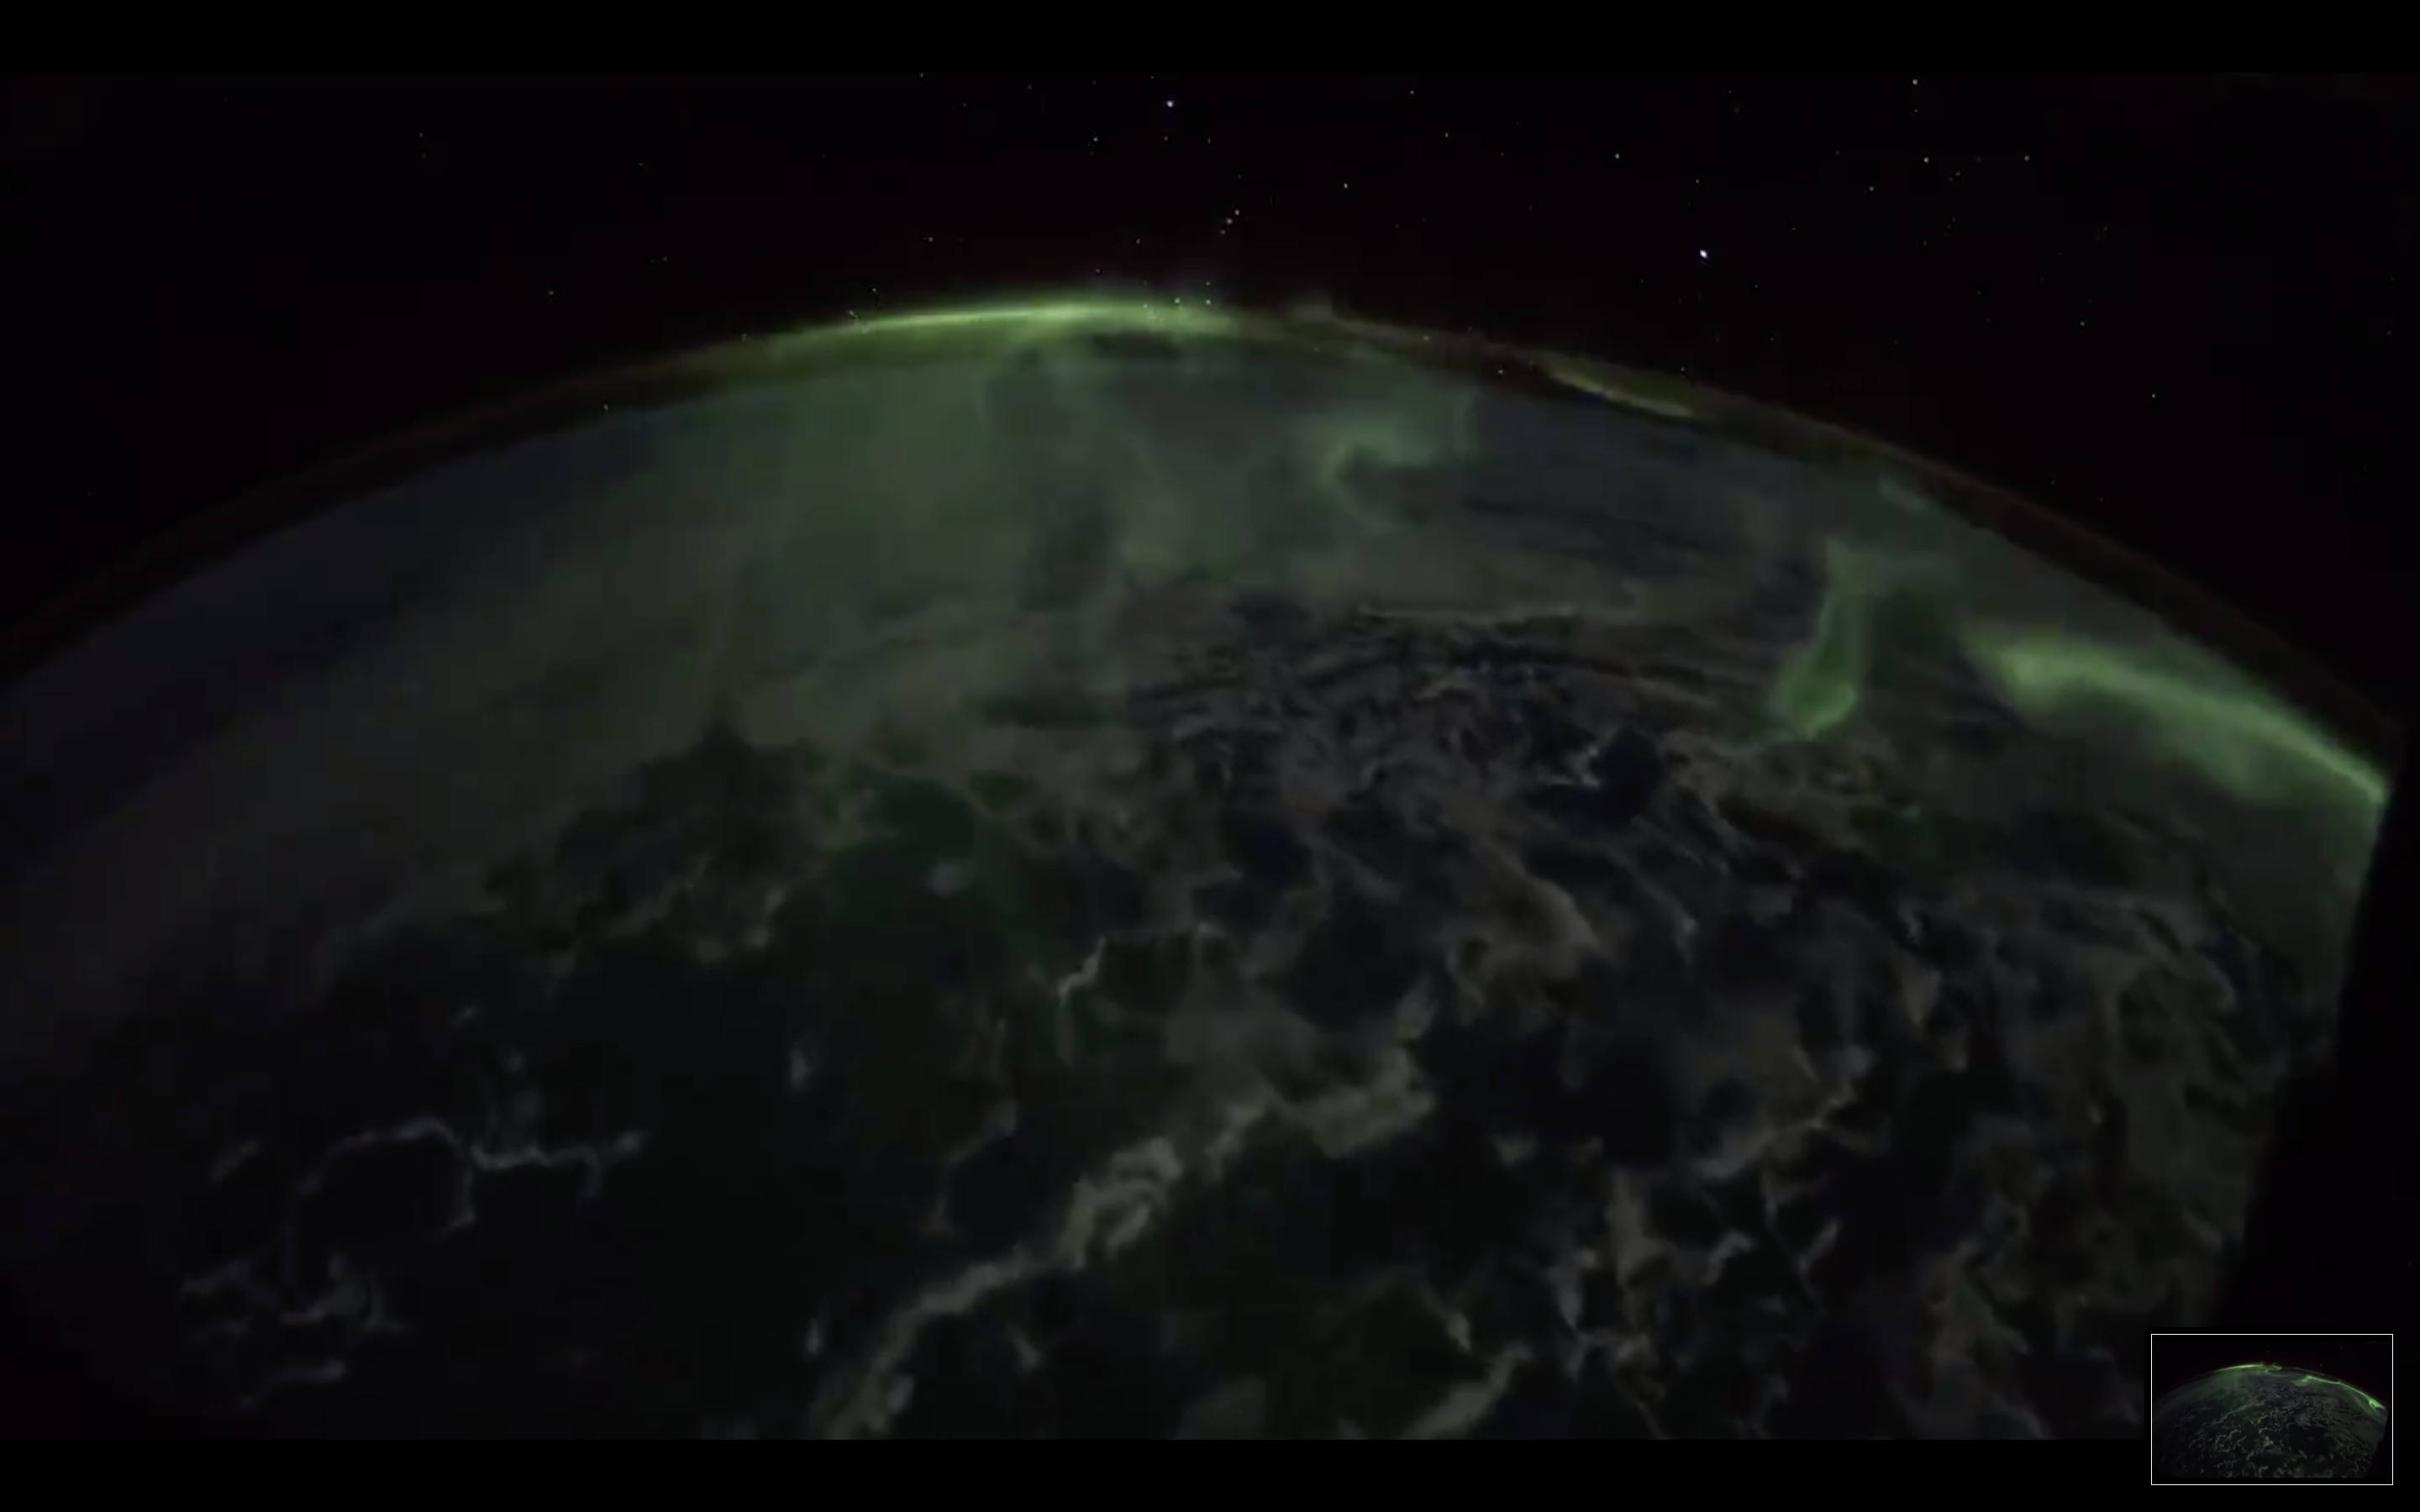 [Earthview Wonders][Video] No.636: Aurora and the Orions